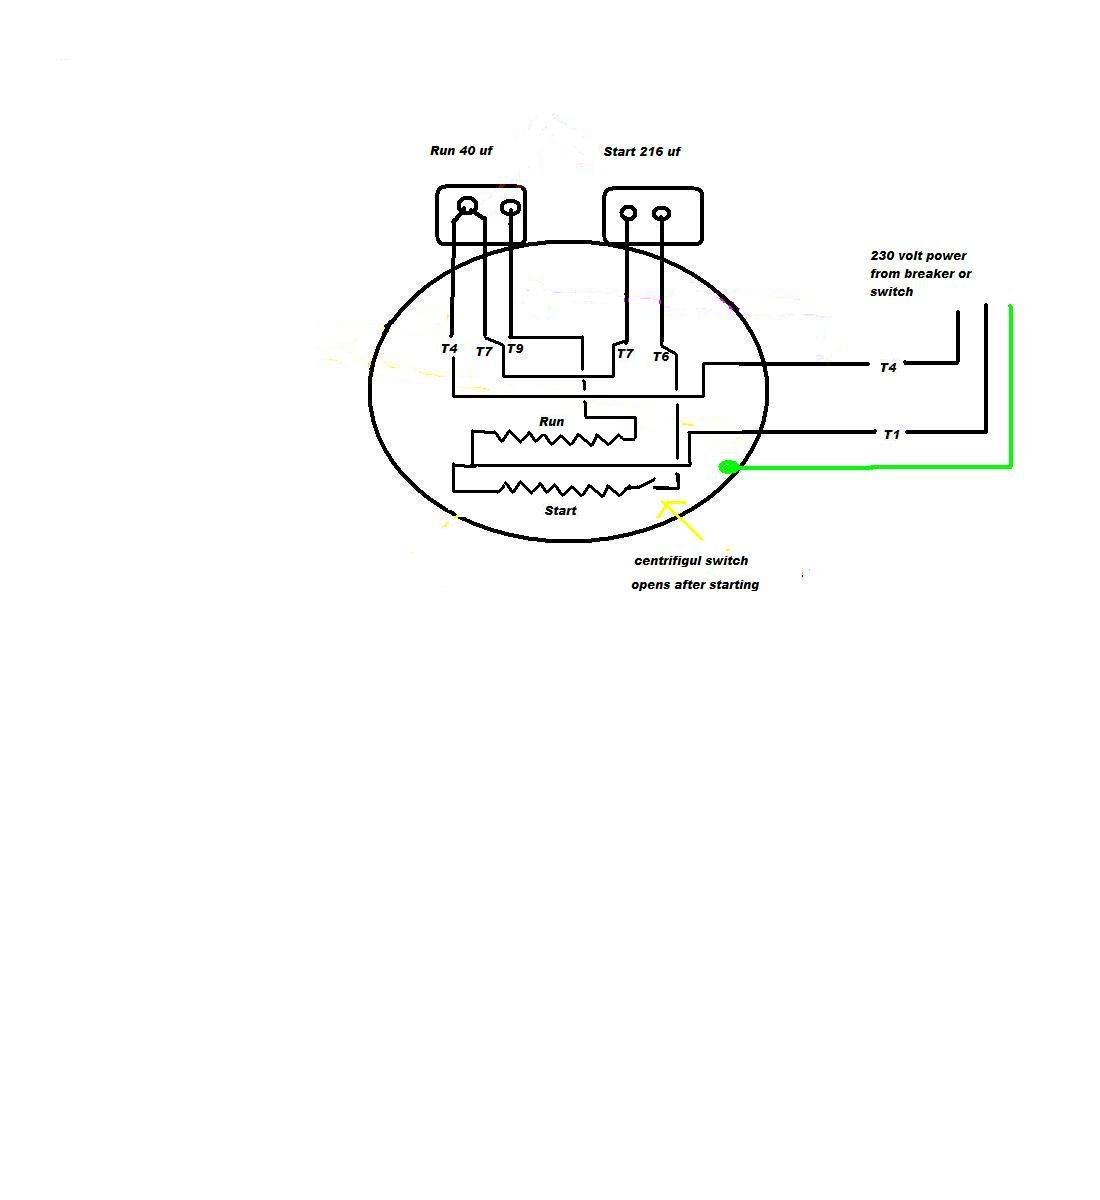 marathon 2 sd motor wiring diagram on marathonpdf images wiring diagram schematics